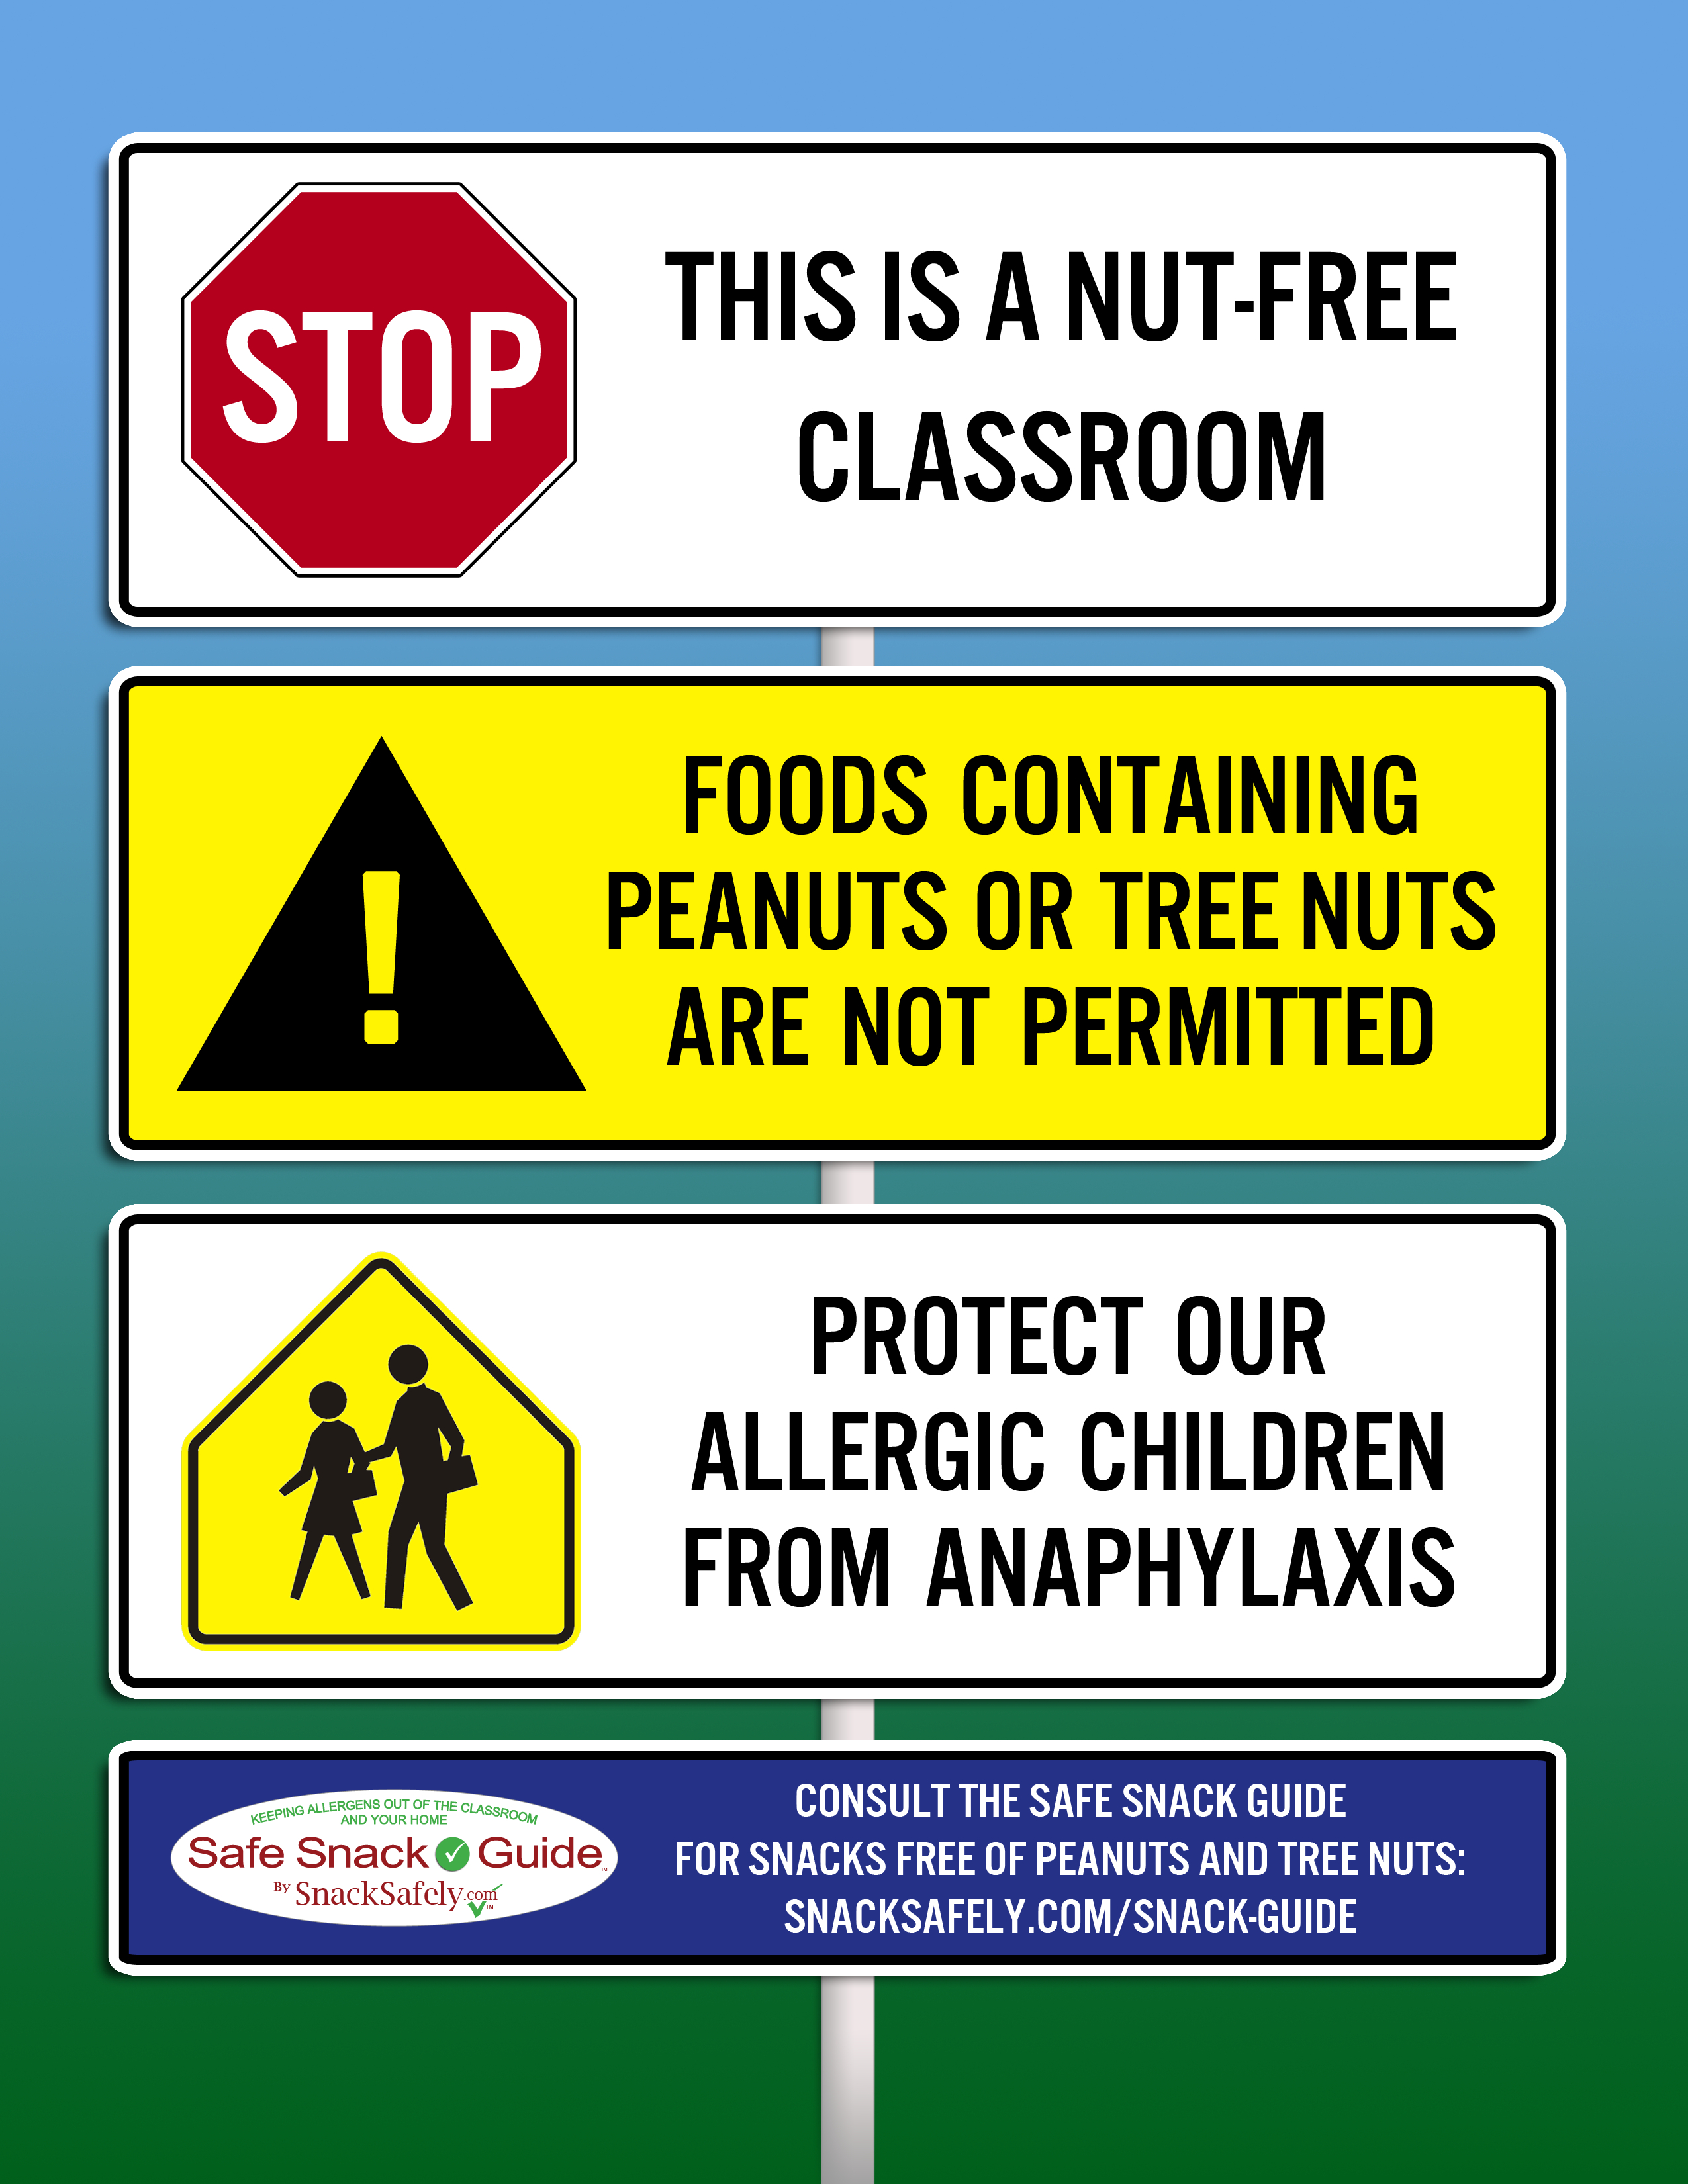 Nut-Free Notice Graphics For Your School | Snacksafely Articles - Printable Nut Free Signs